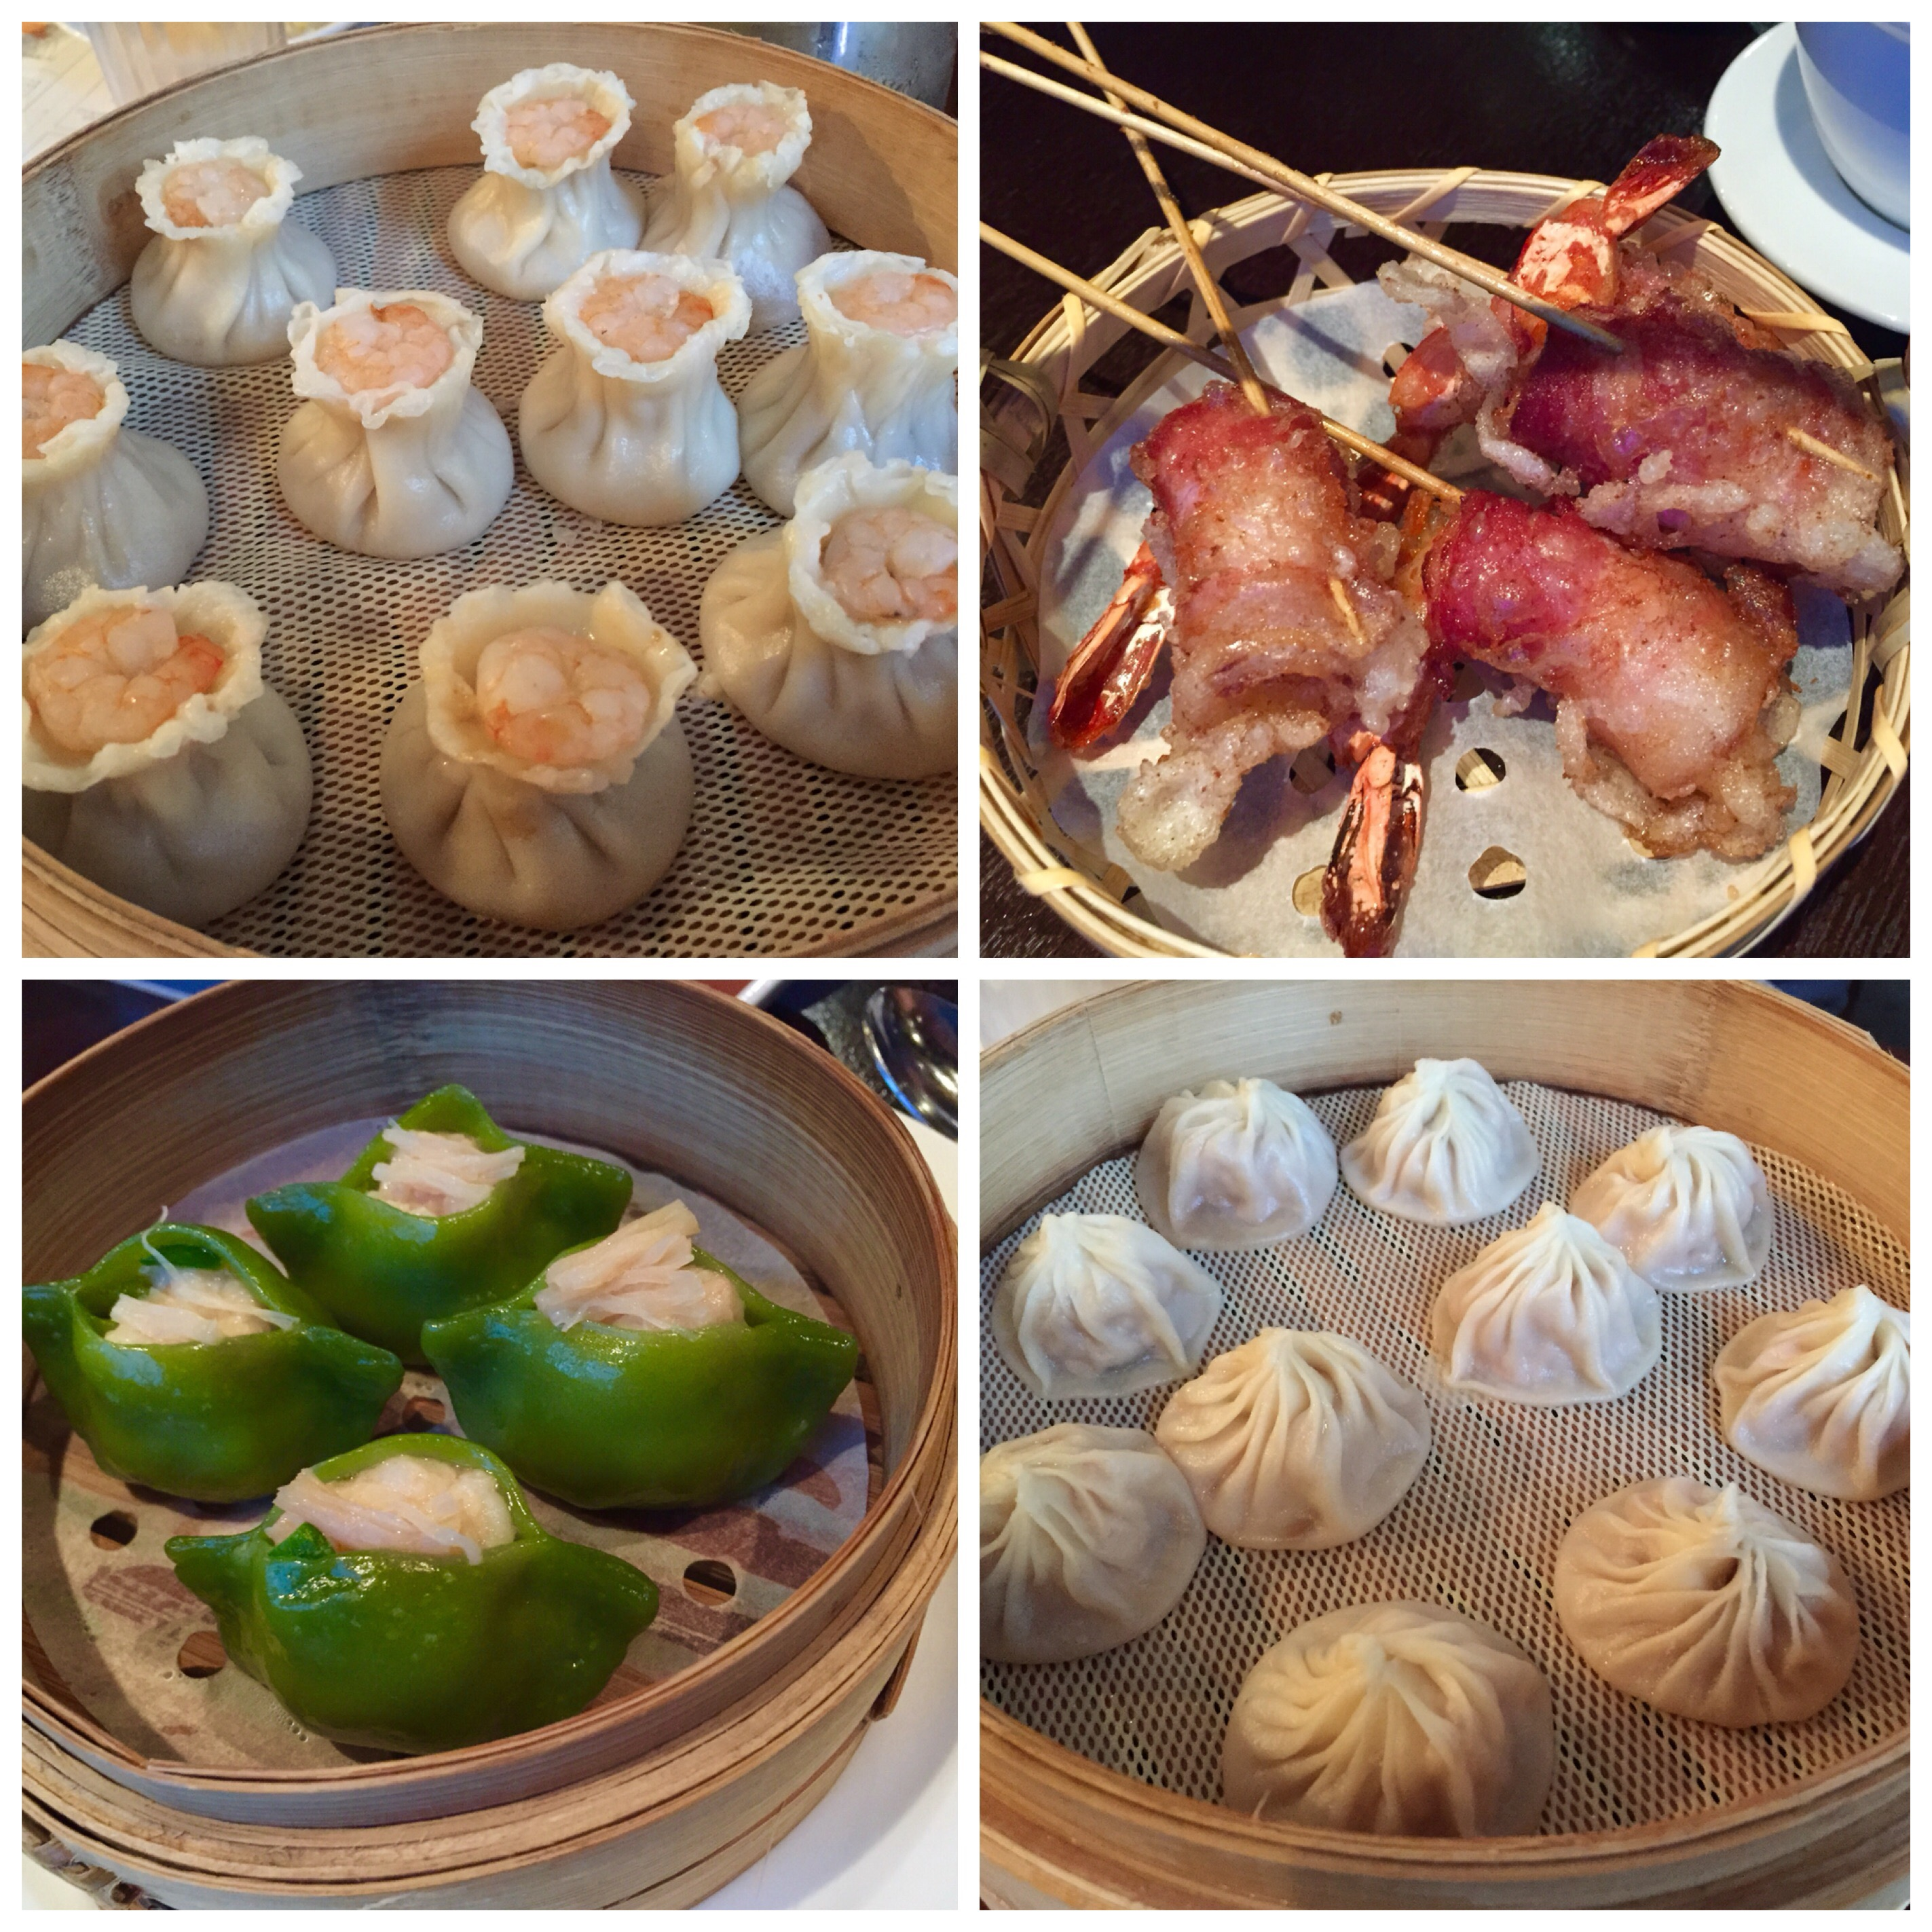 You Dim Sum, You Lose Some At Chai 797 And Din Tai Fung